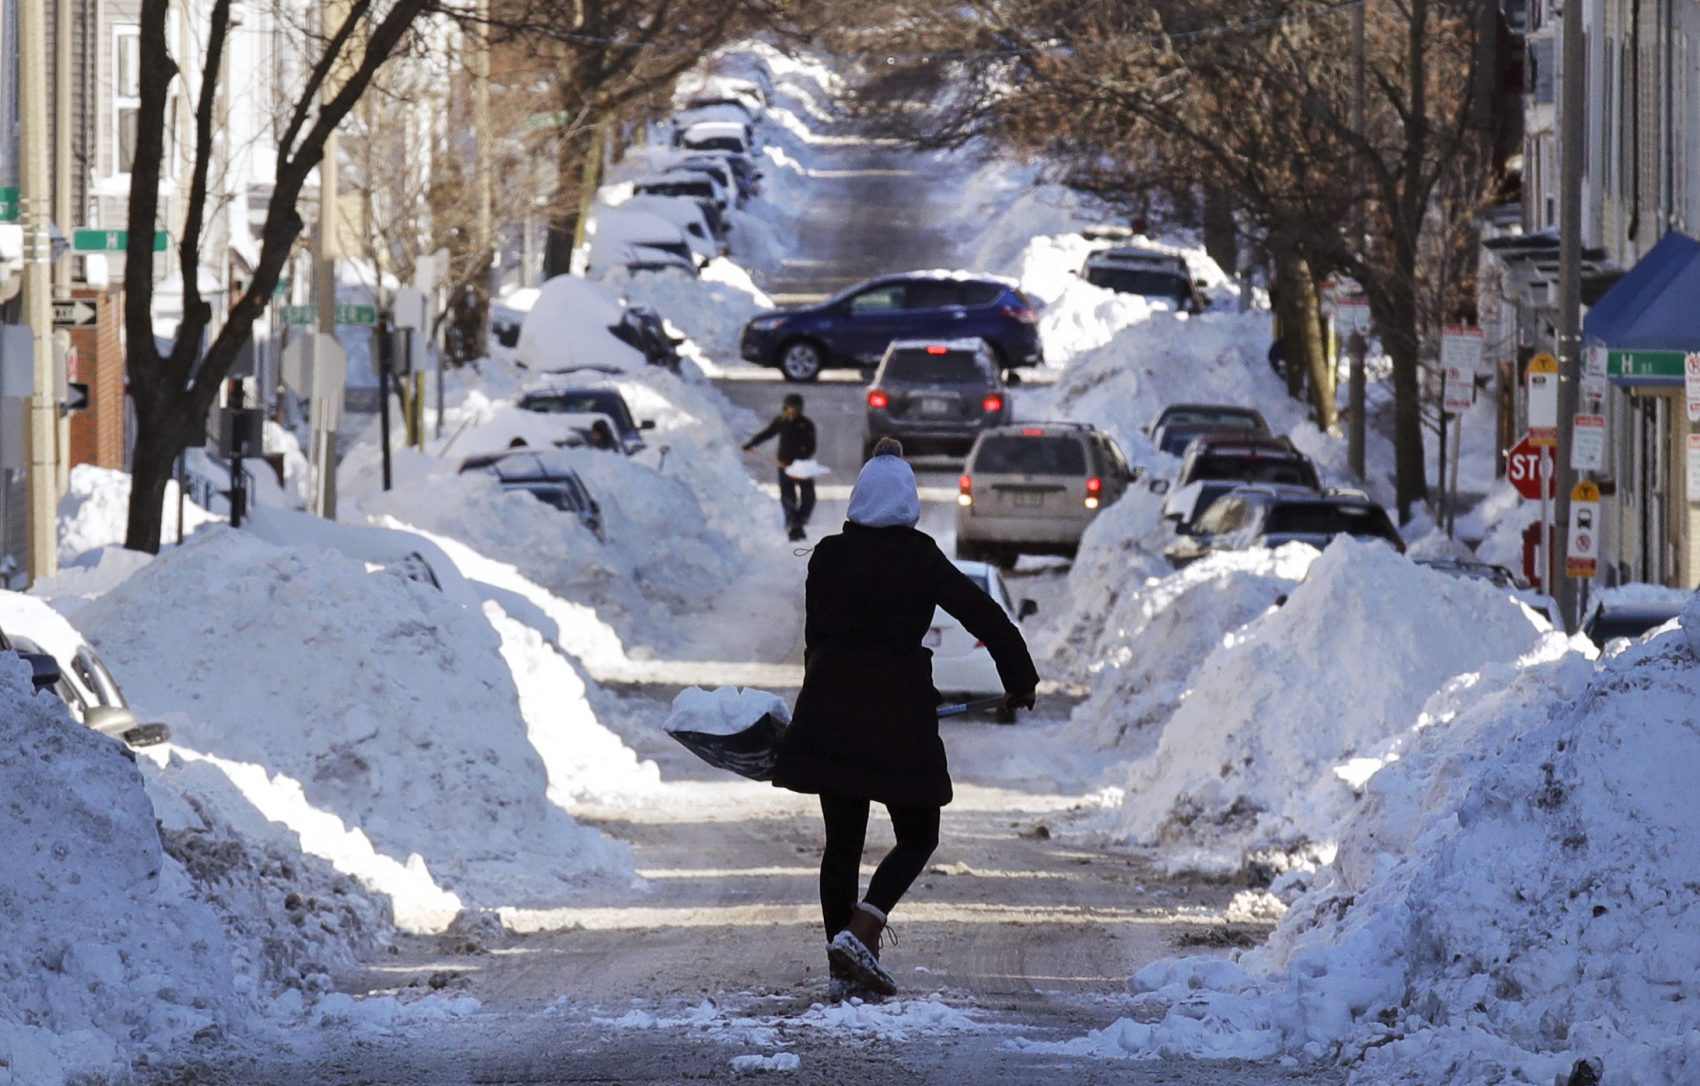 Mollie Lane carries a shovel-full of snow down the street to a pile while digging her car out in the South Boston neighborhood of Boston. (Charles Krupa/AP)